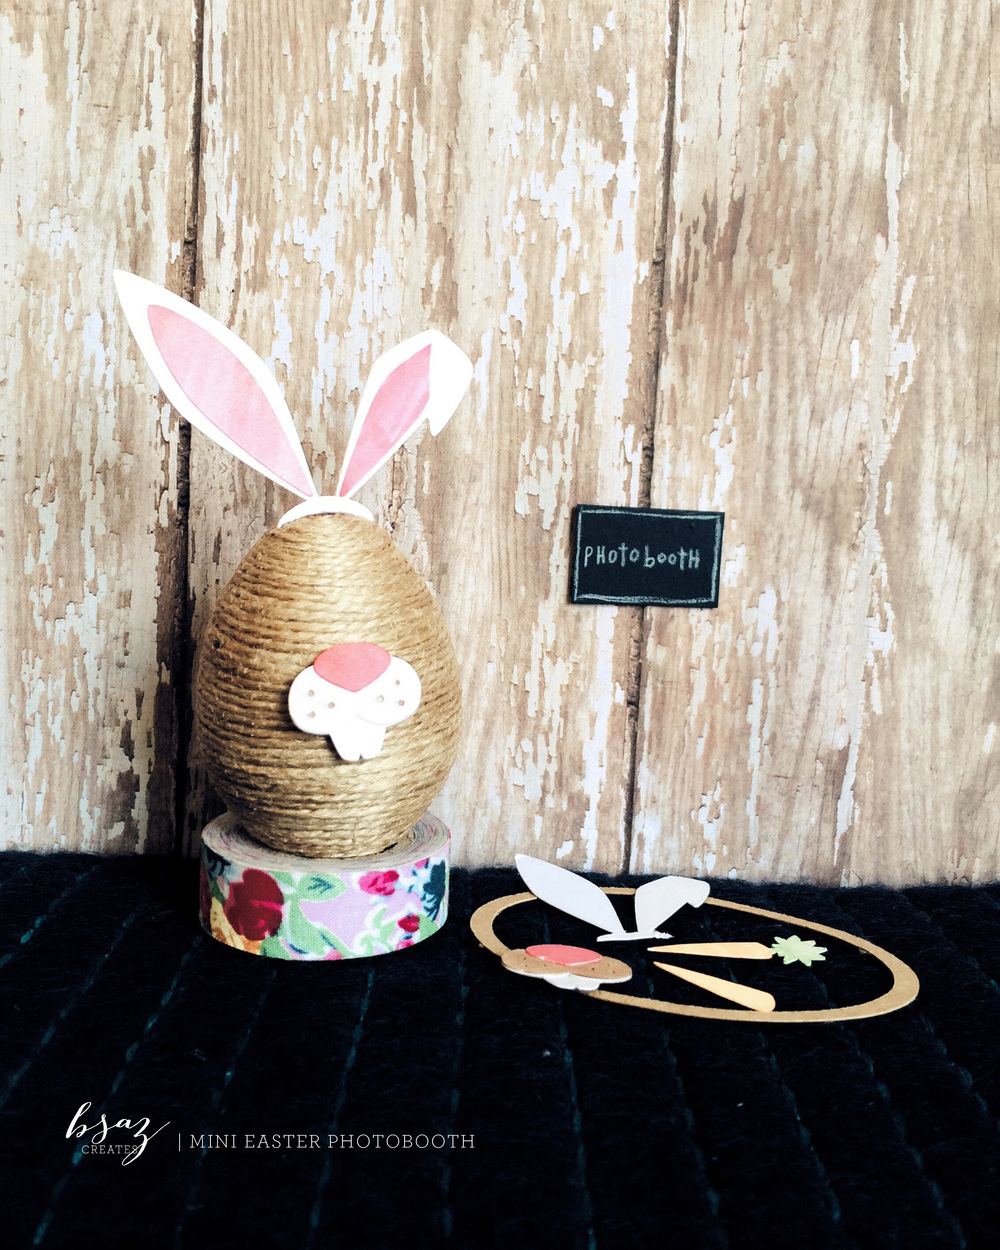 BSaz Creates | Mini Easter Photo Booth Egg